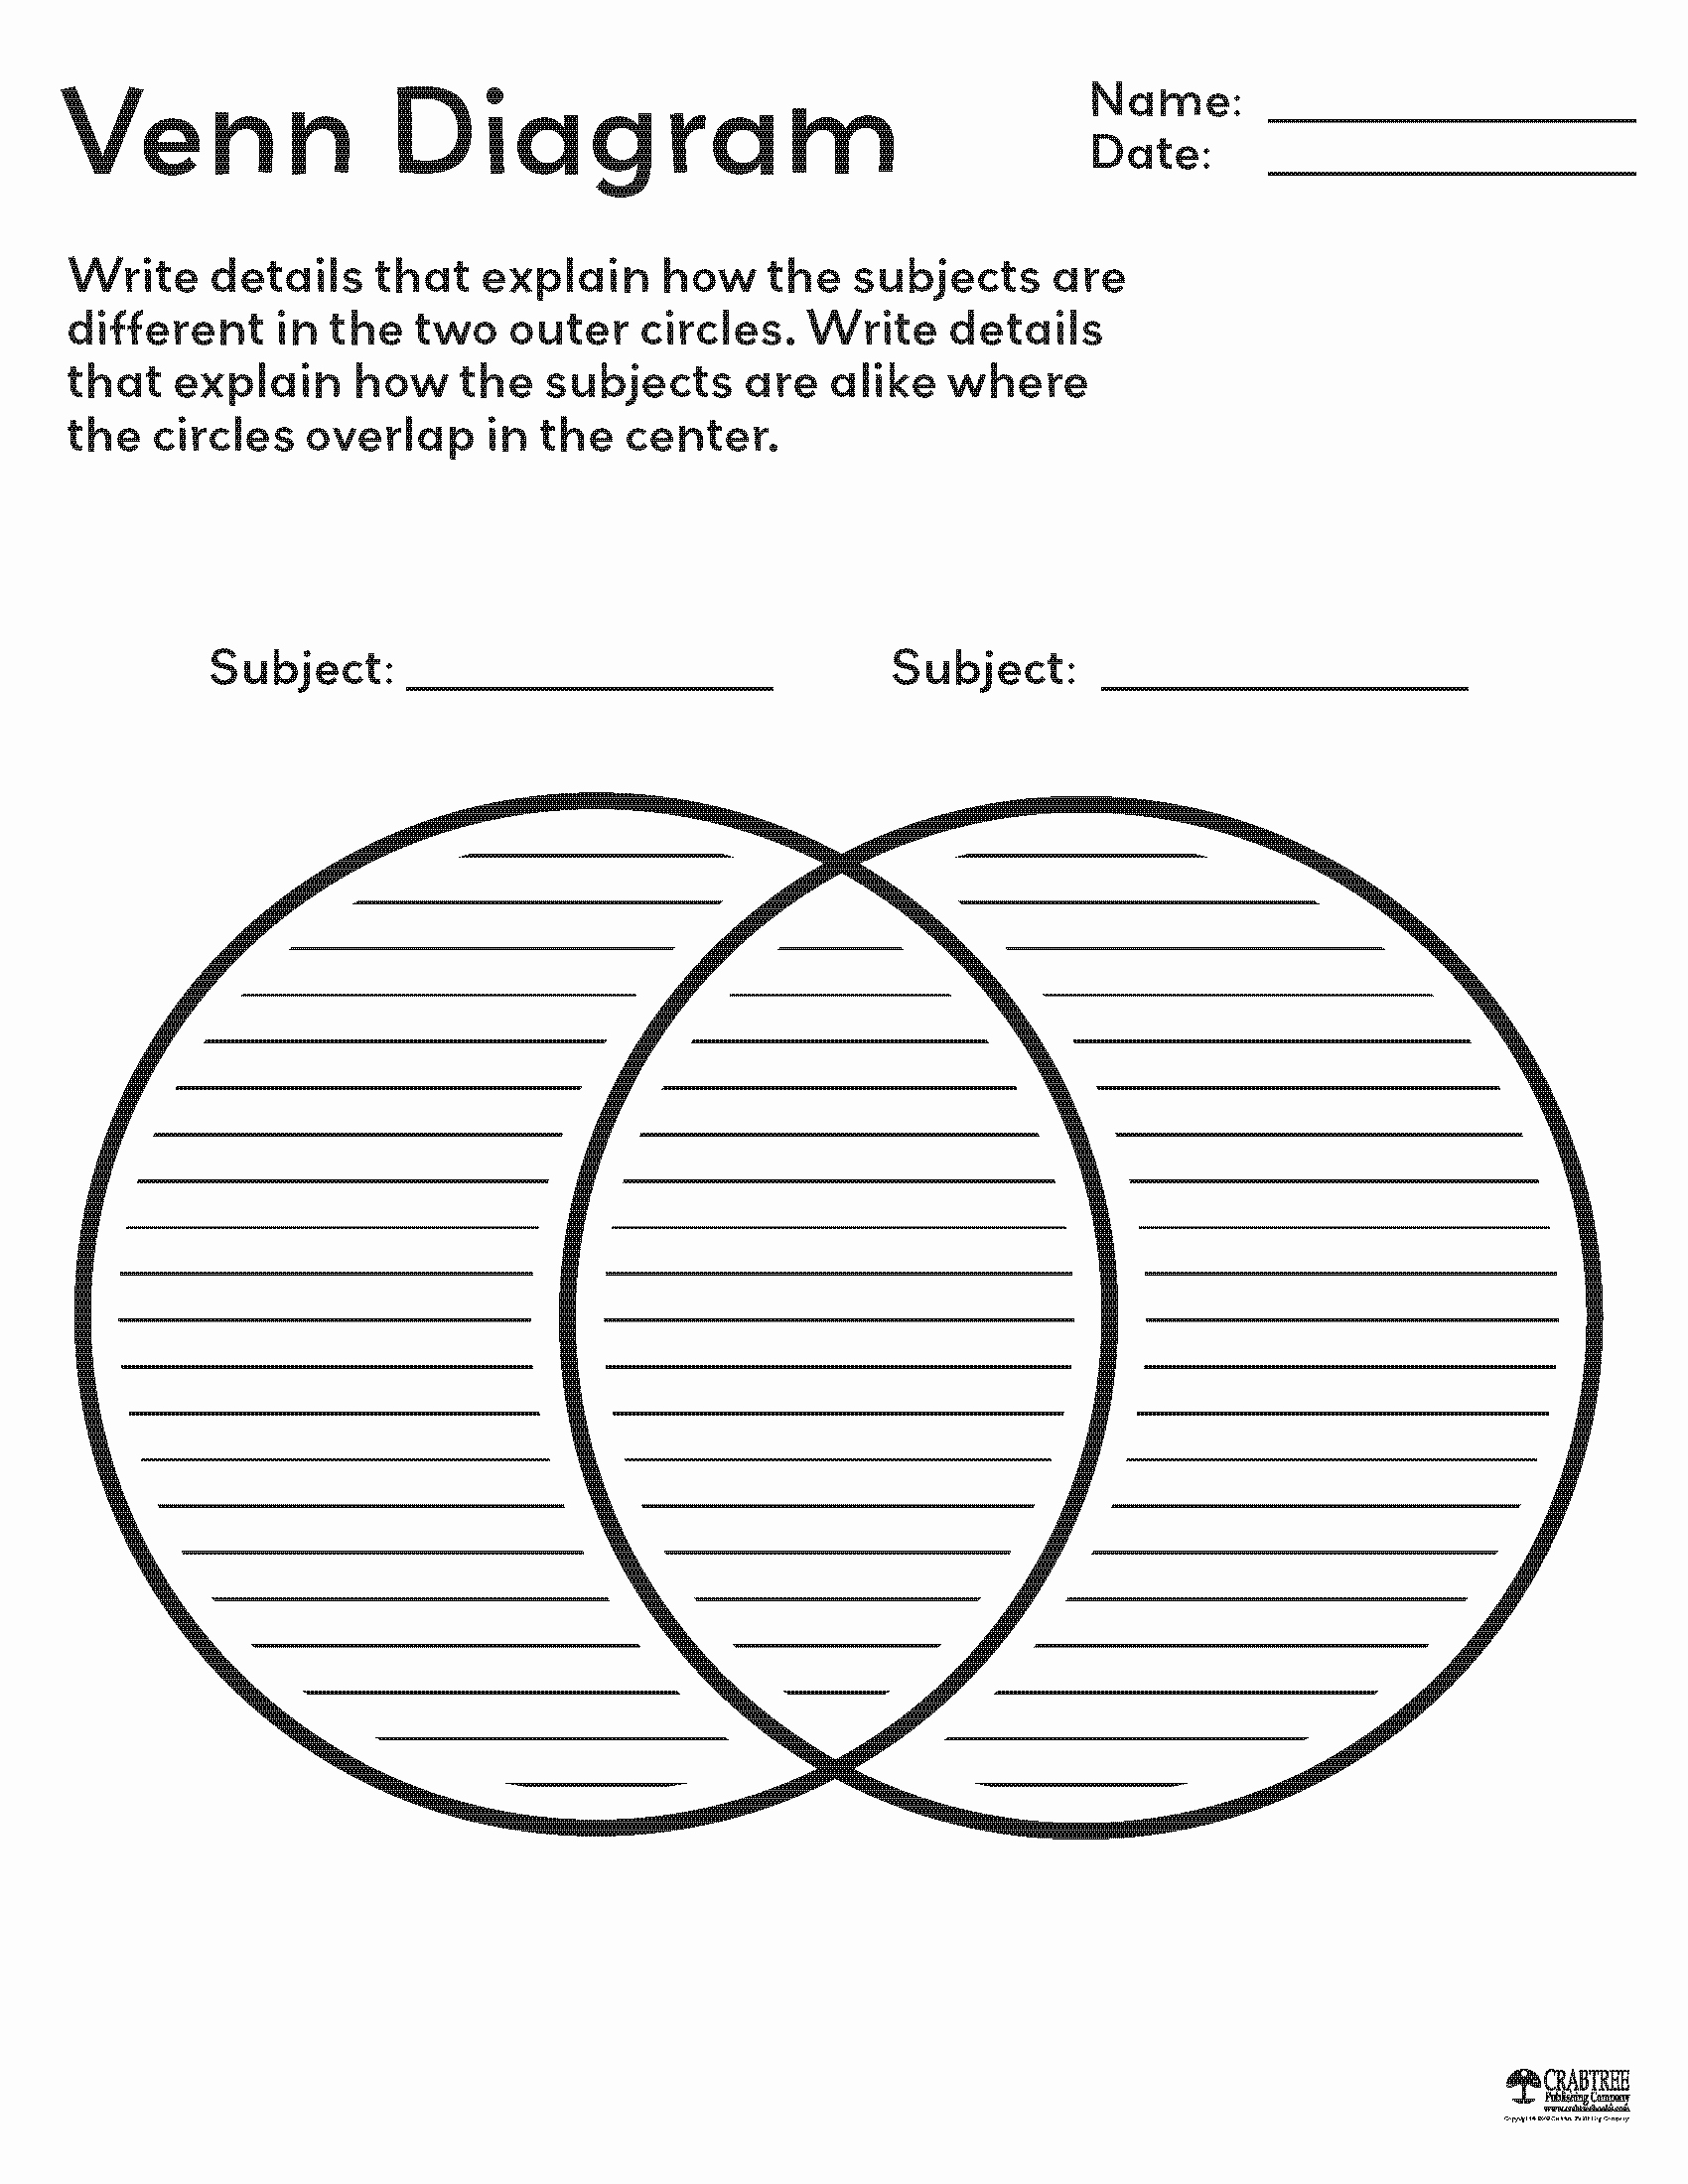 Venn Diagram to Print Inspirational Free Printable Venn Diagram From Crabtree Publishing